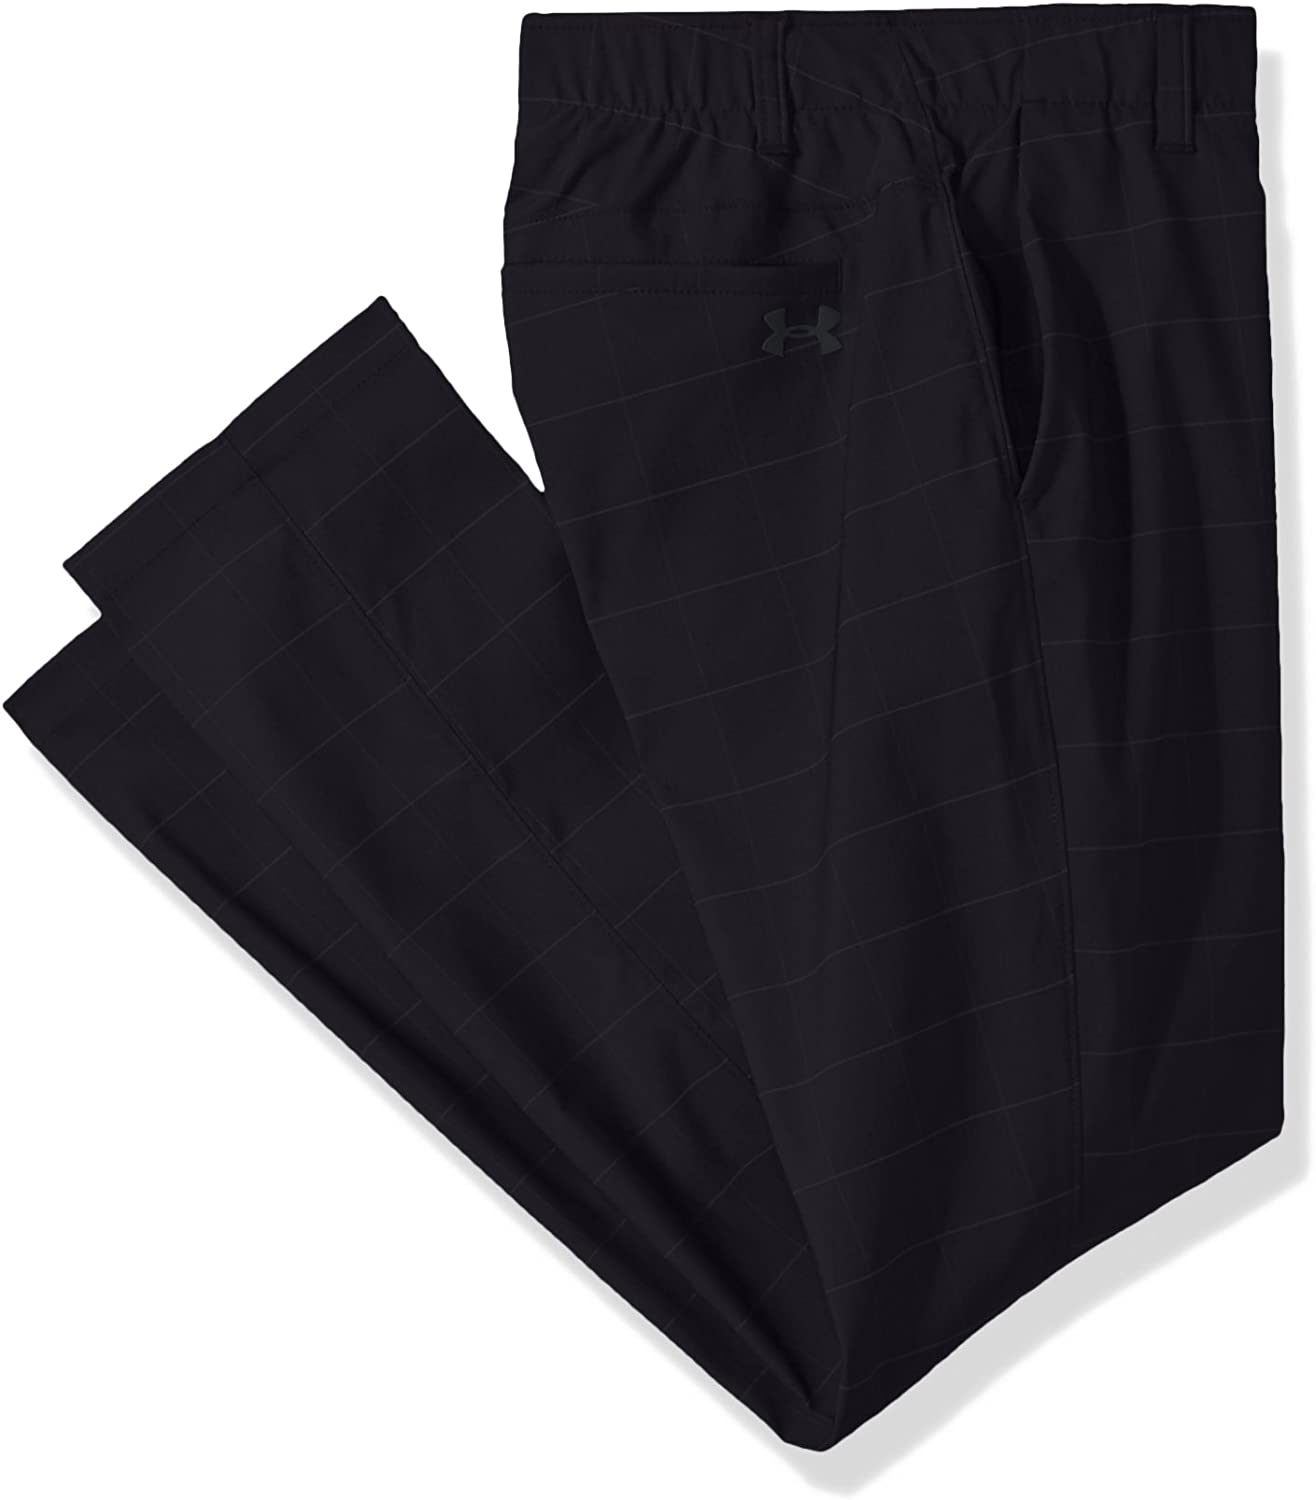 Max 71% OFF Under Armour Men's Showdown Taper Pattern Popularity Pants